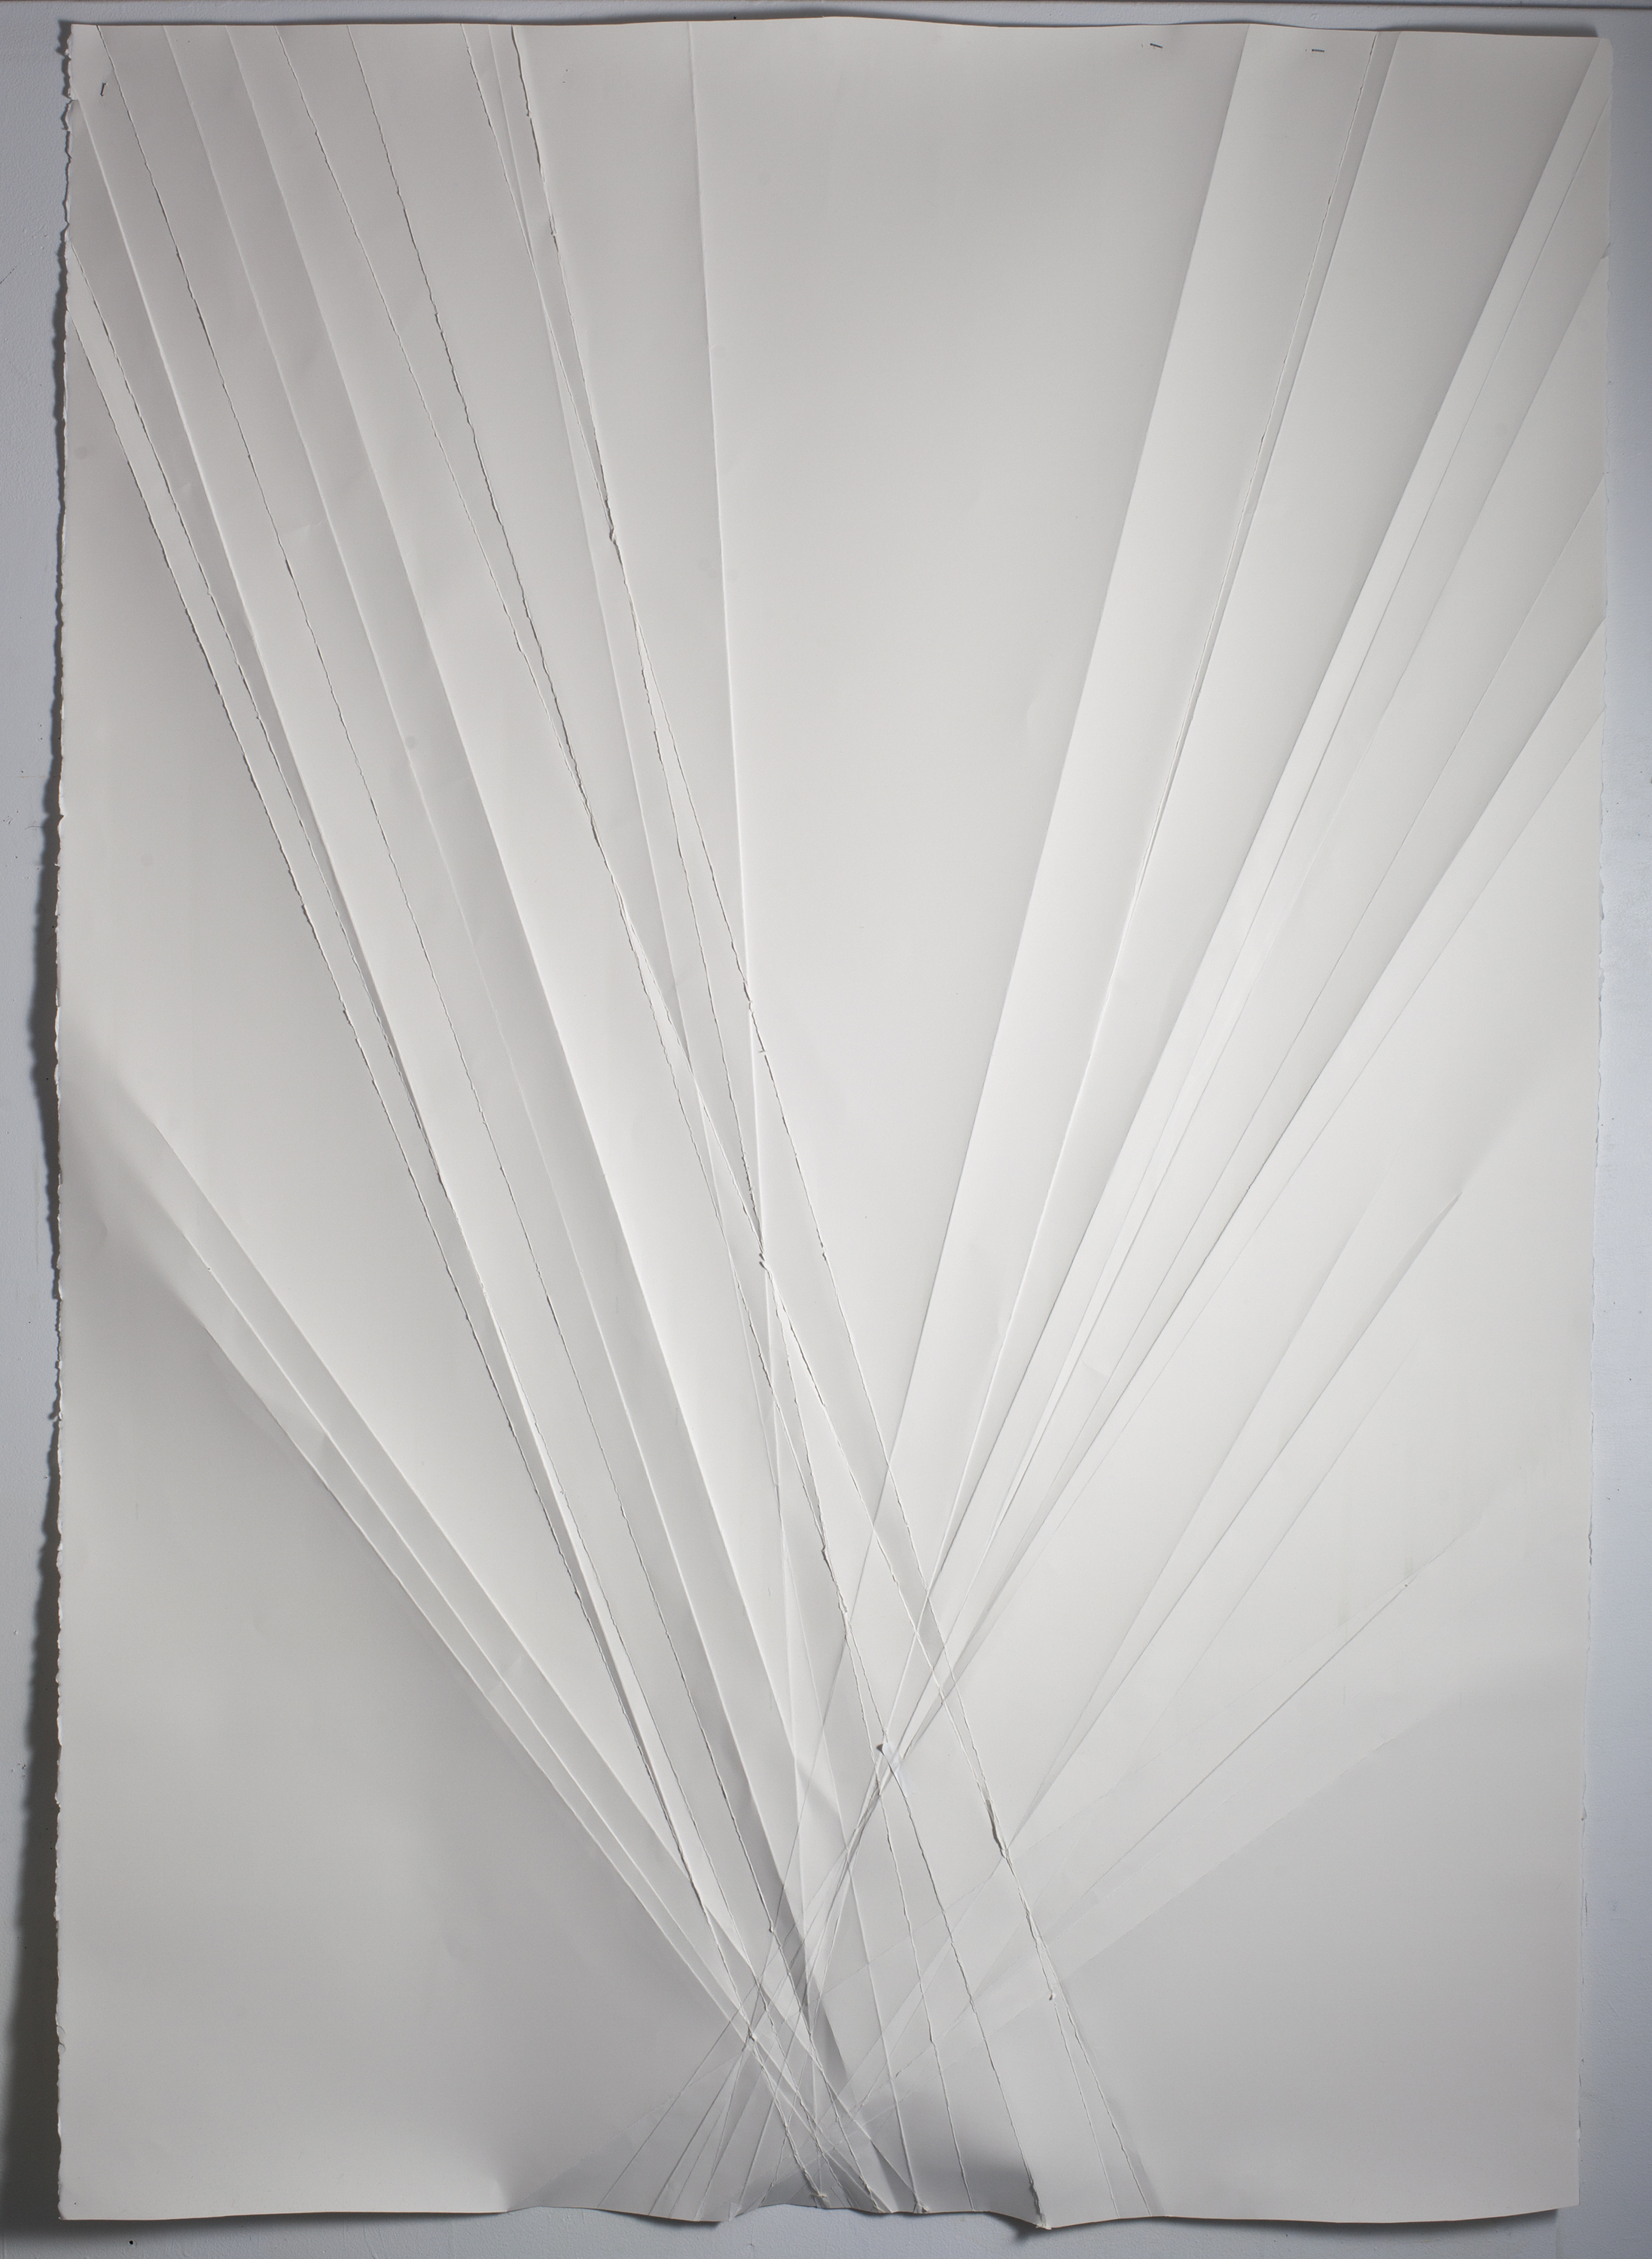 Untitled, 2014, folded paper, 50 x 70 inches